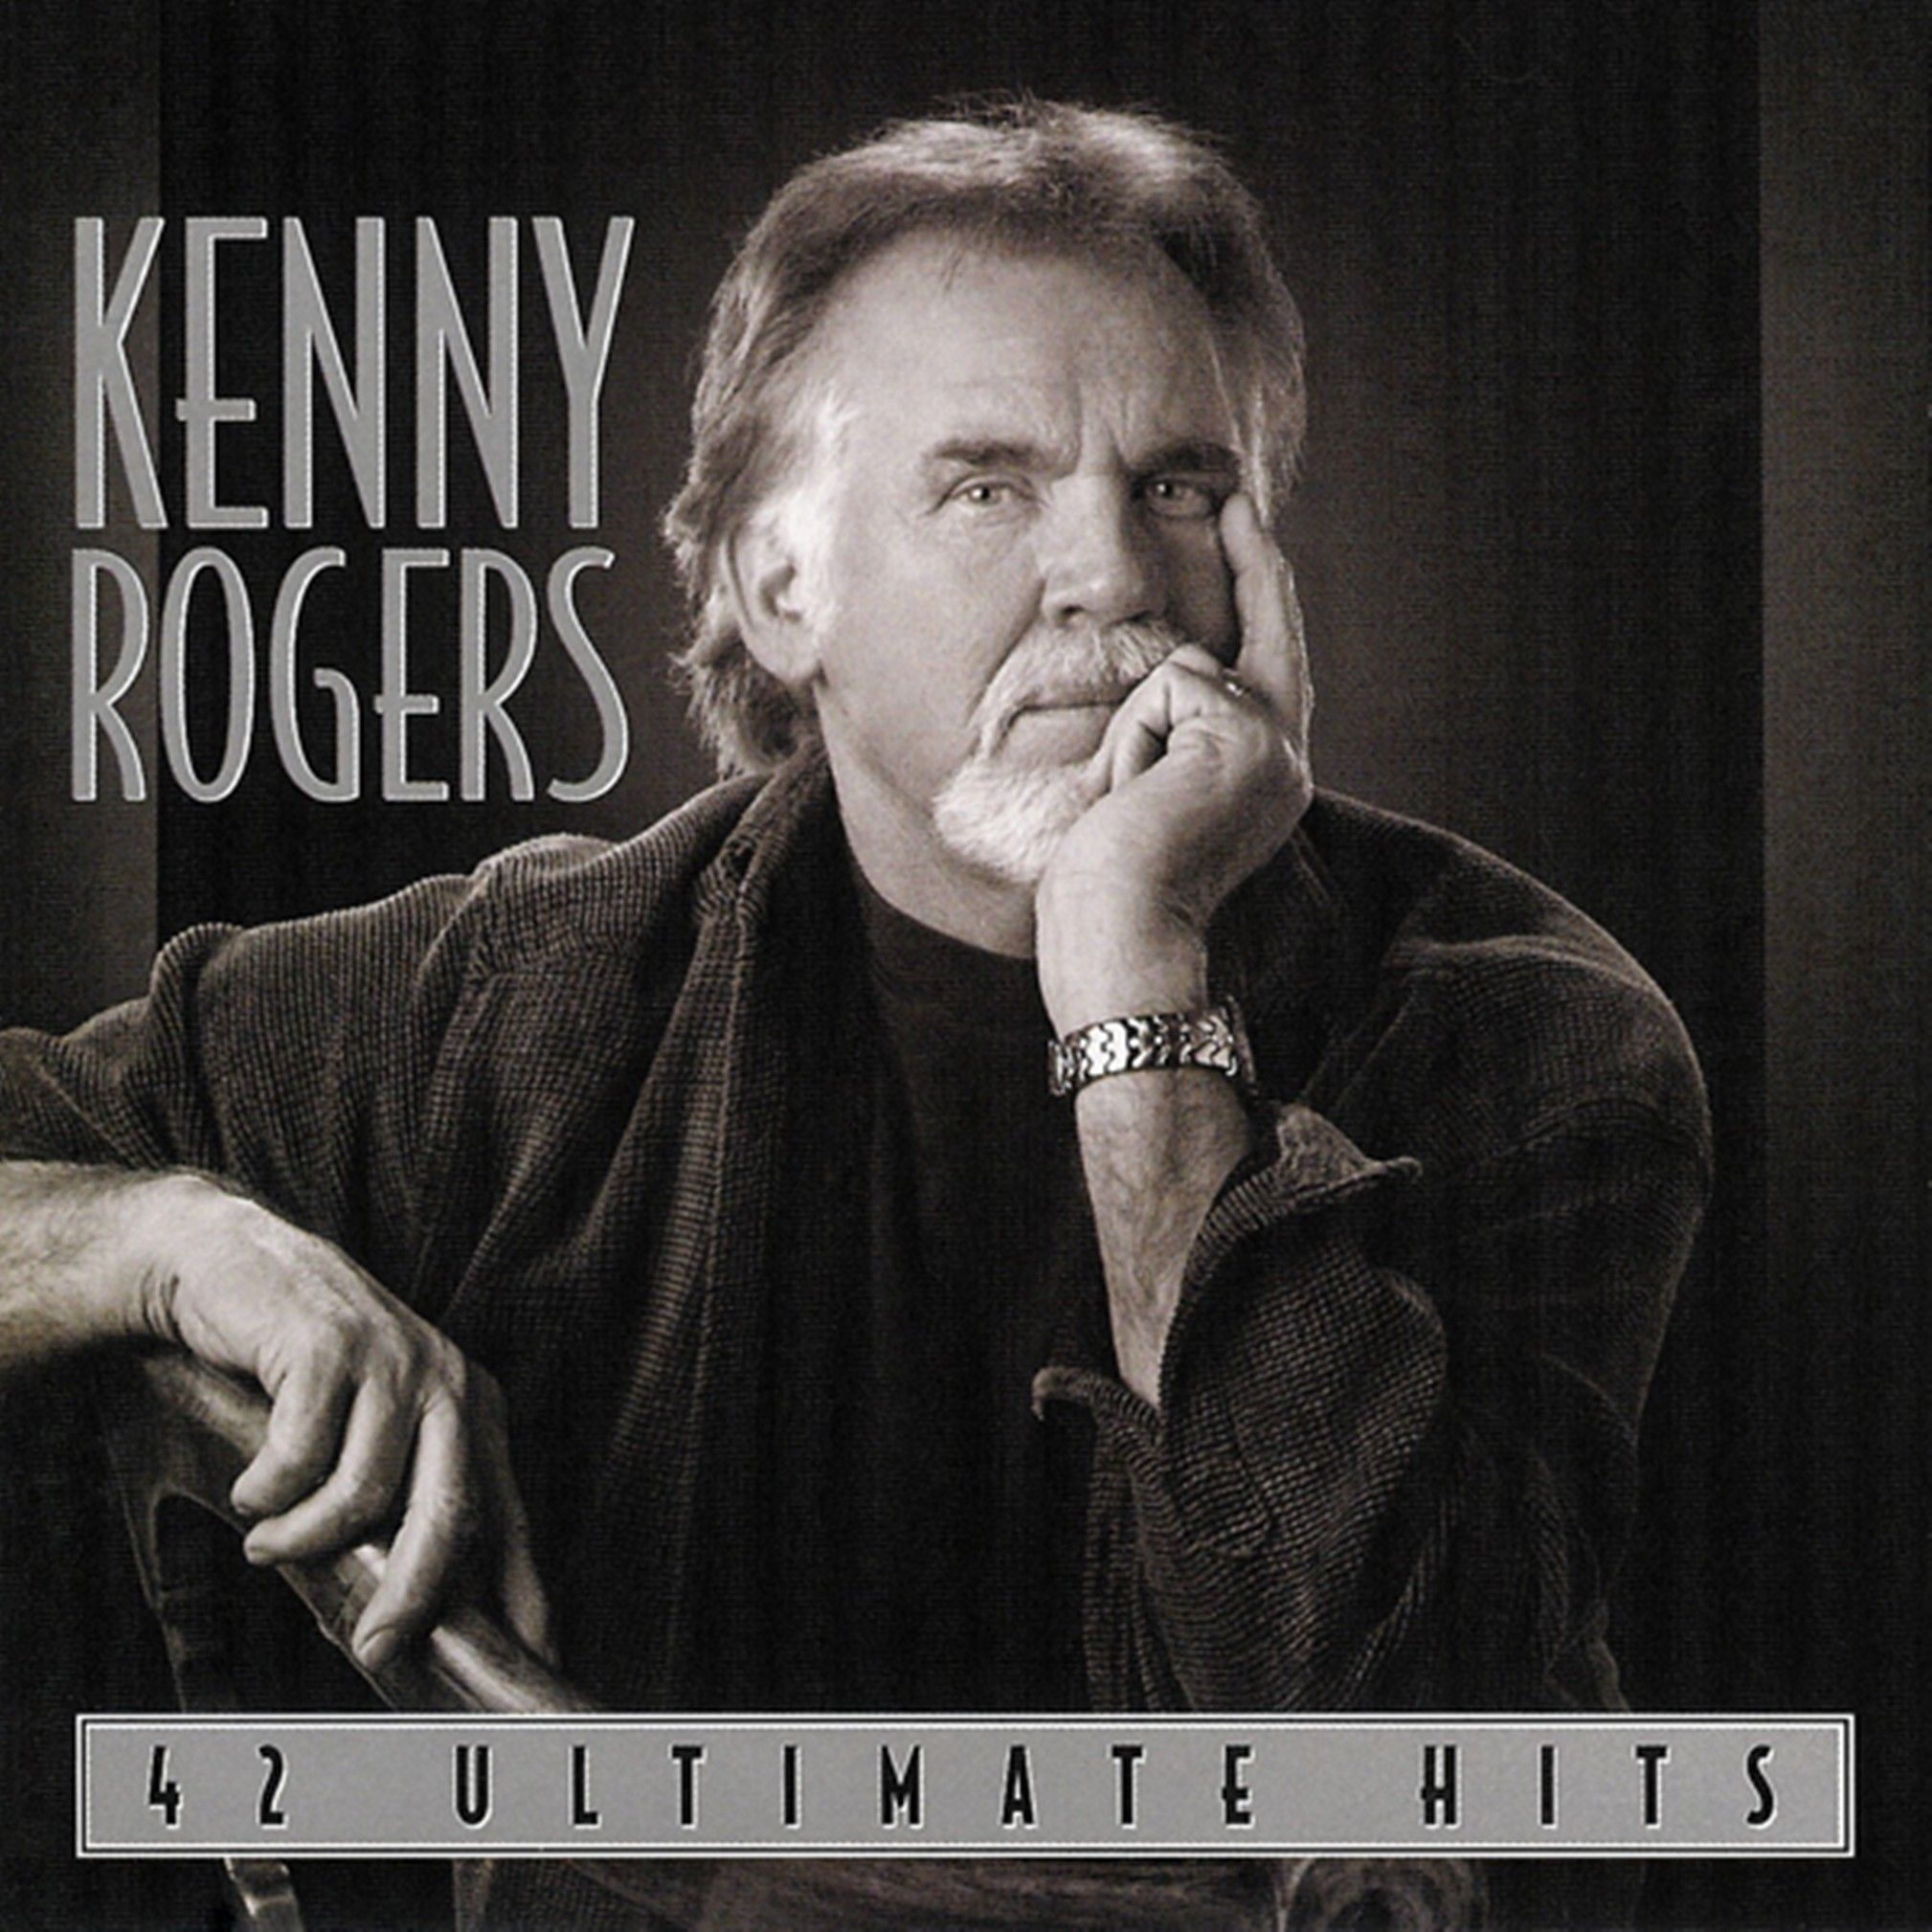 42 Ultimate Hits by Kenny Rogers - Music Charts